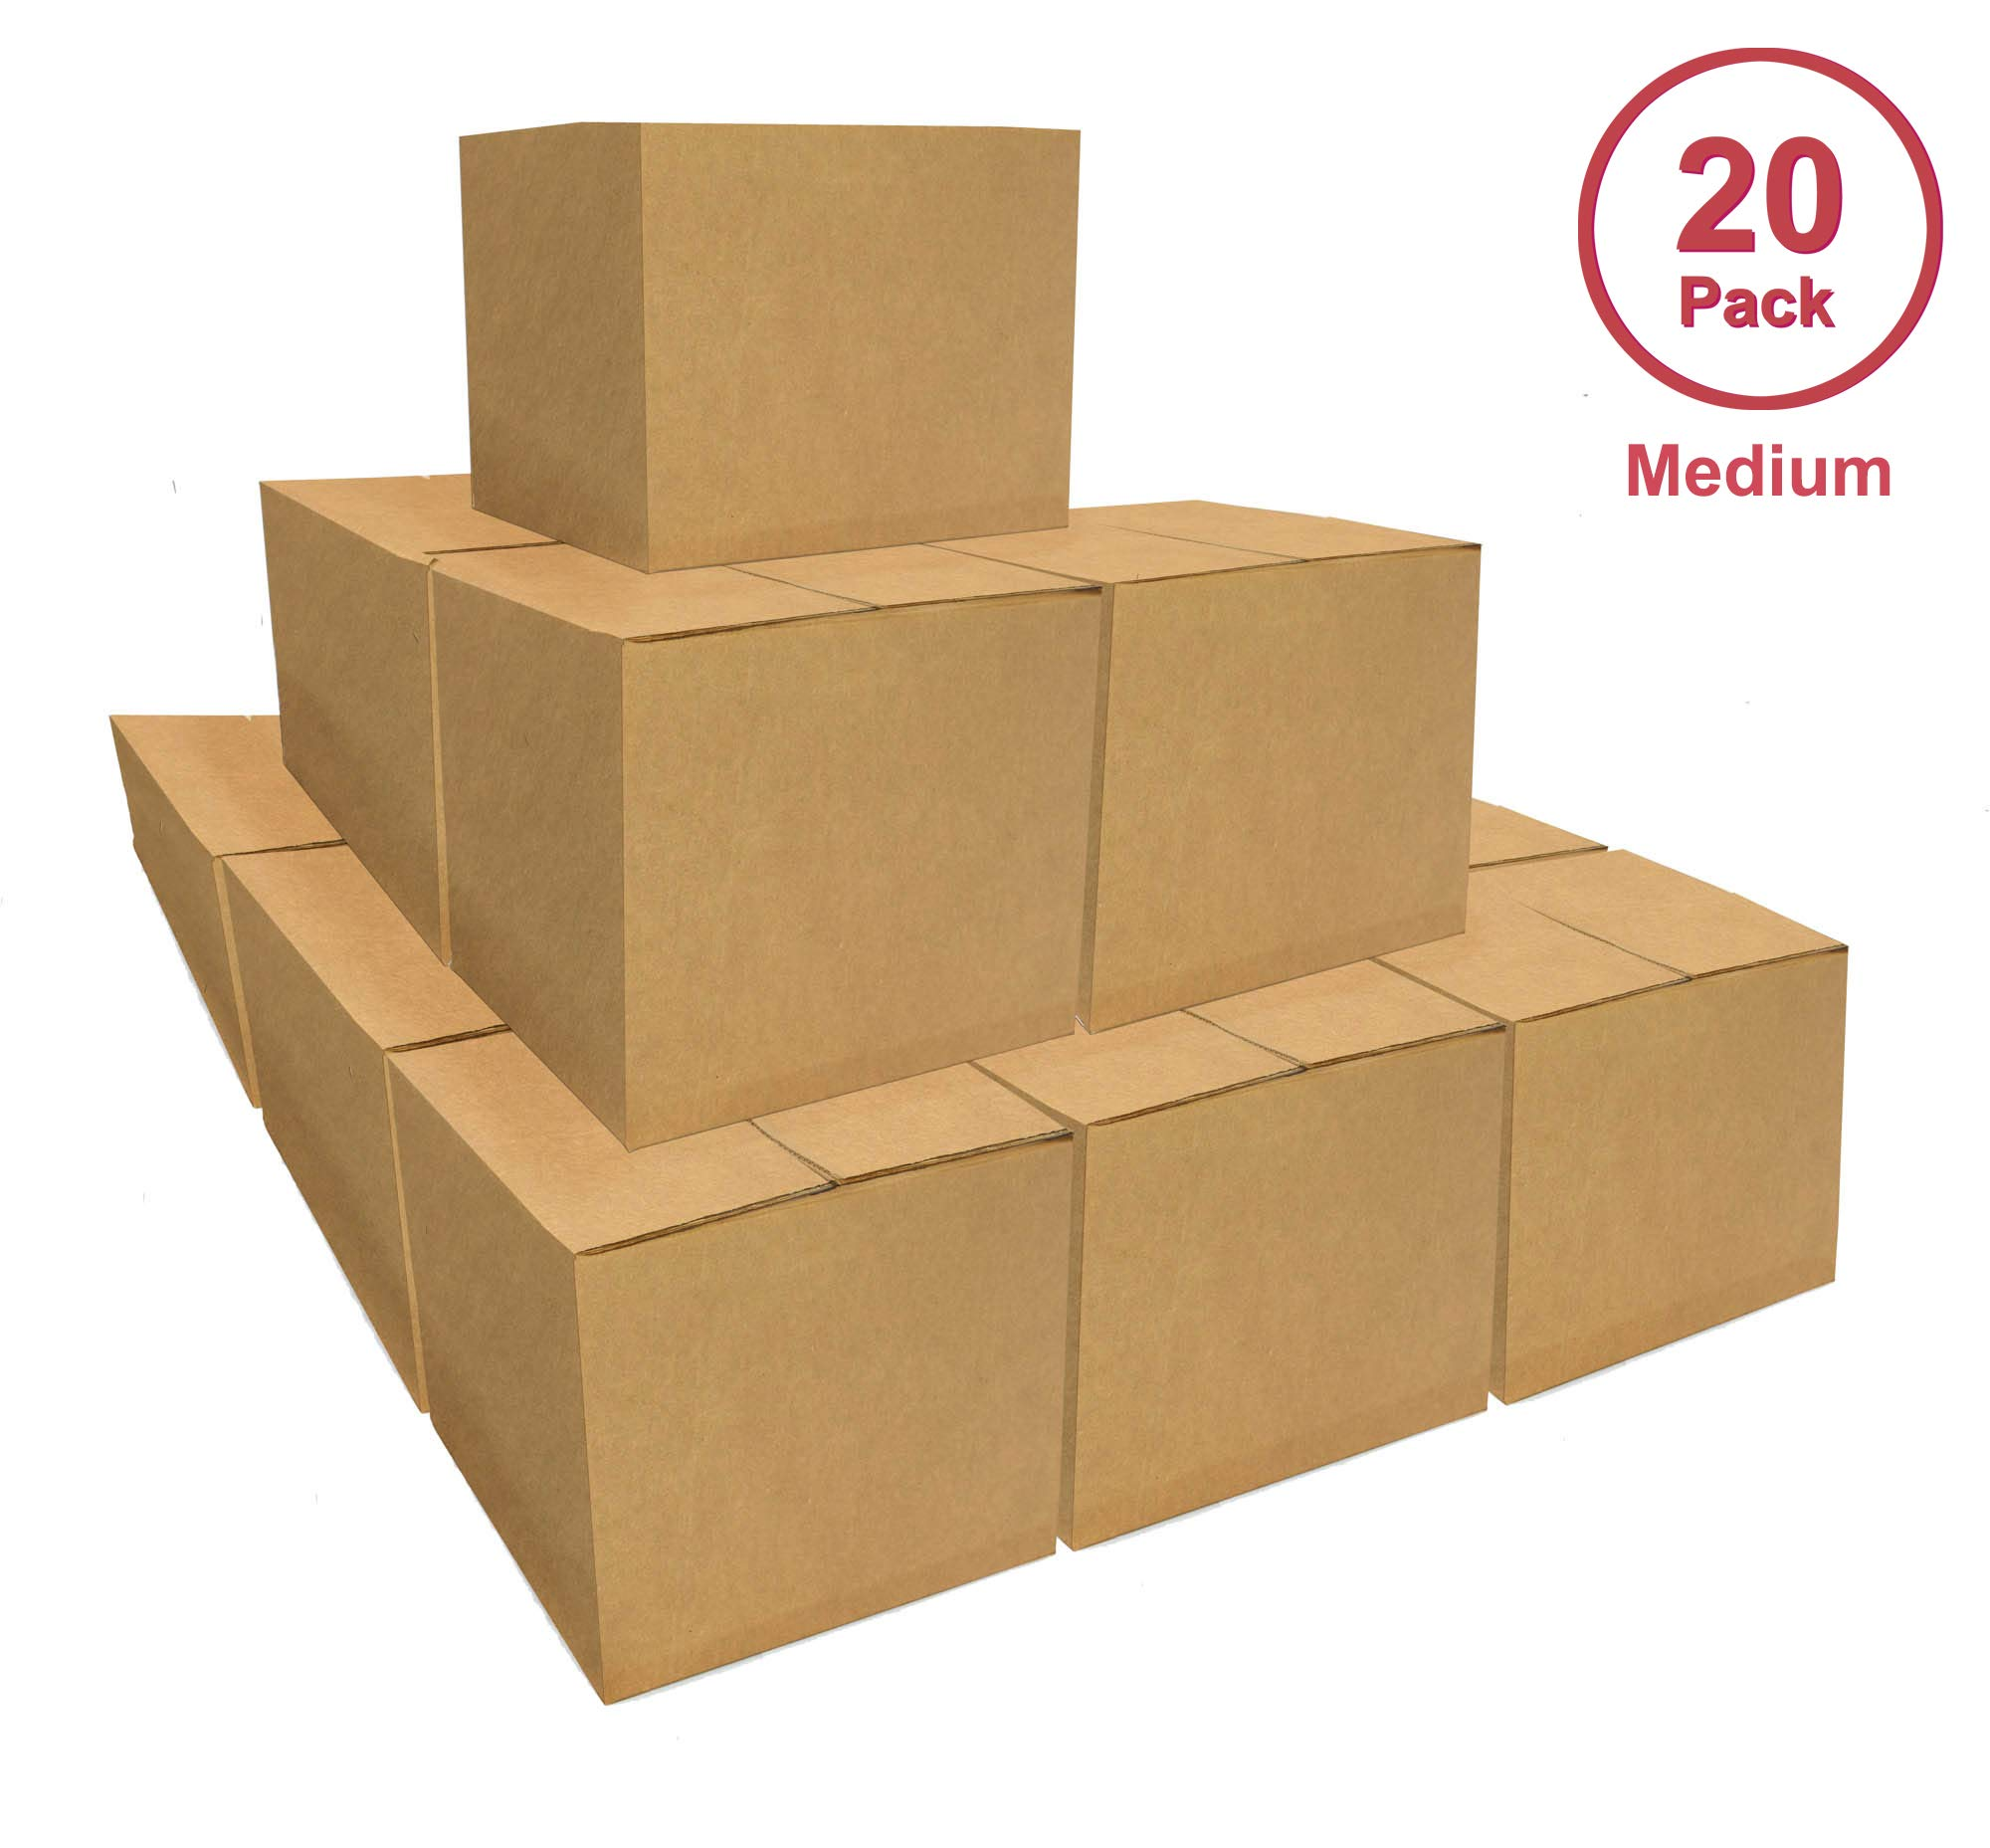 "Medium Size Corrugated Cardboard Boxes (20 Pack) 18"" x 14"" x 12"" Heavy-Duty Box Ideal for Moving, Storing, Shipping and Packing"